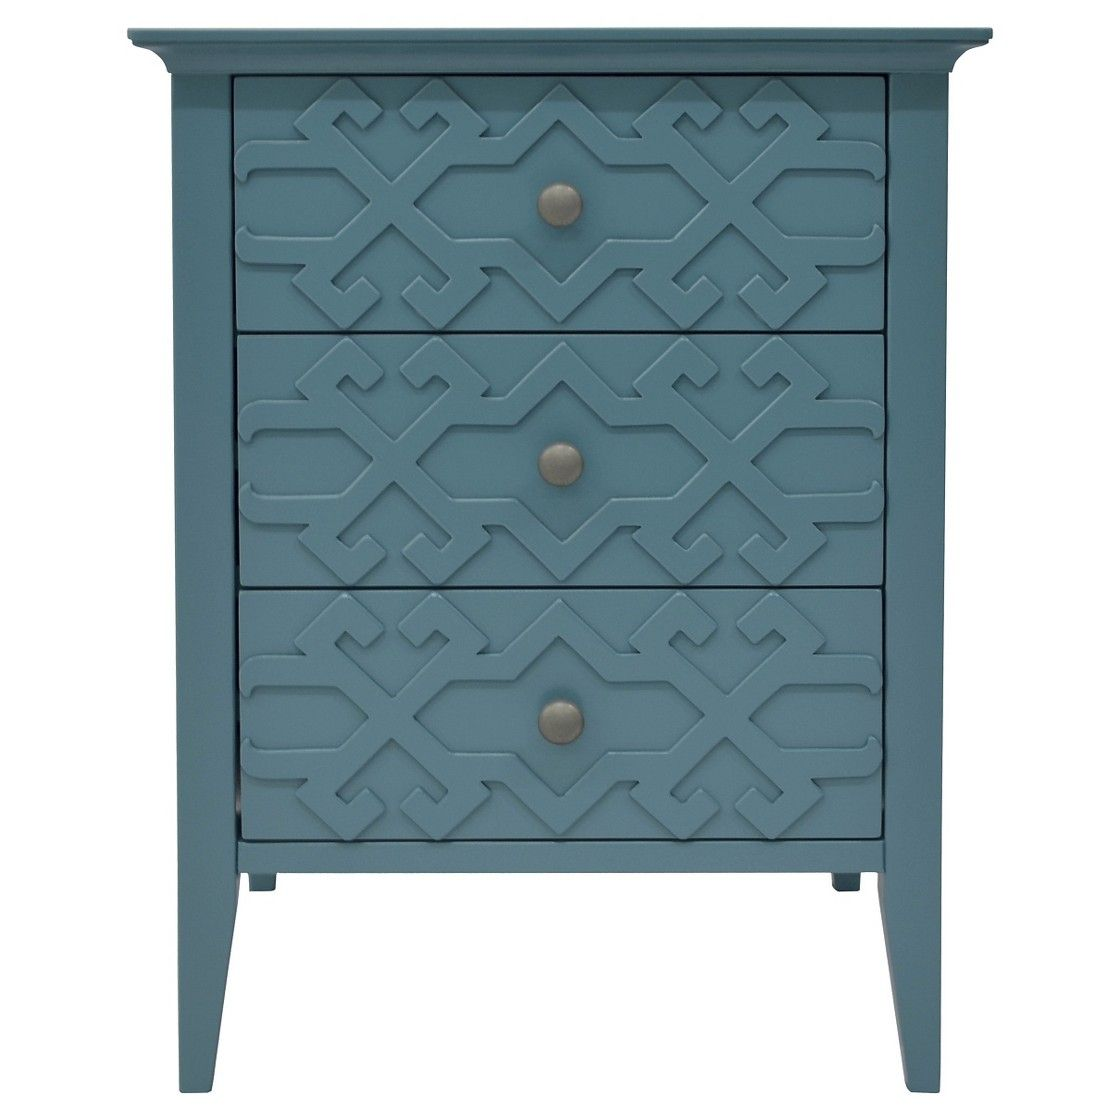 threshold accent table teal new house fretwork door console cabinet breakfast chairs sofa ideas wicker drum bar height legs mid century modern dining room patio cover umbrella